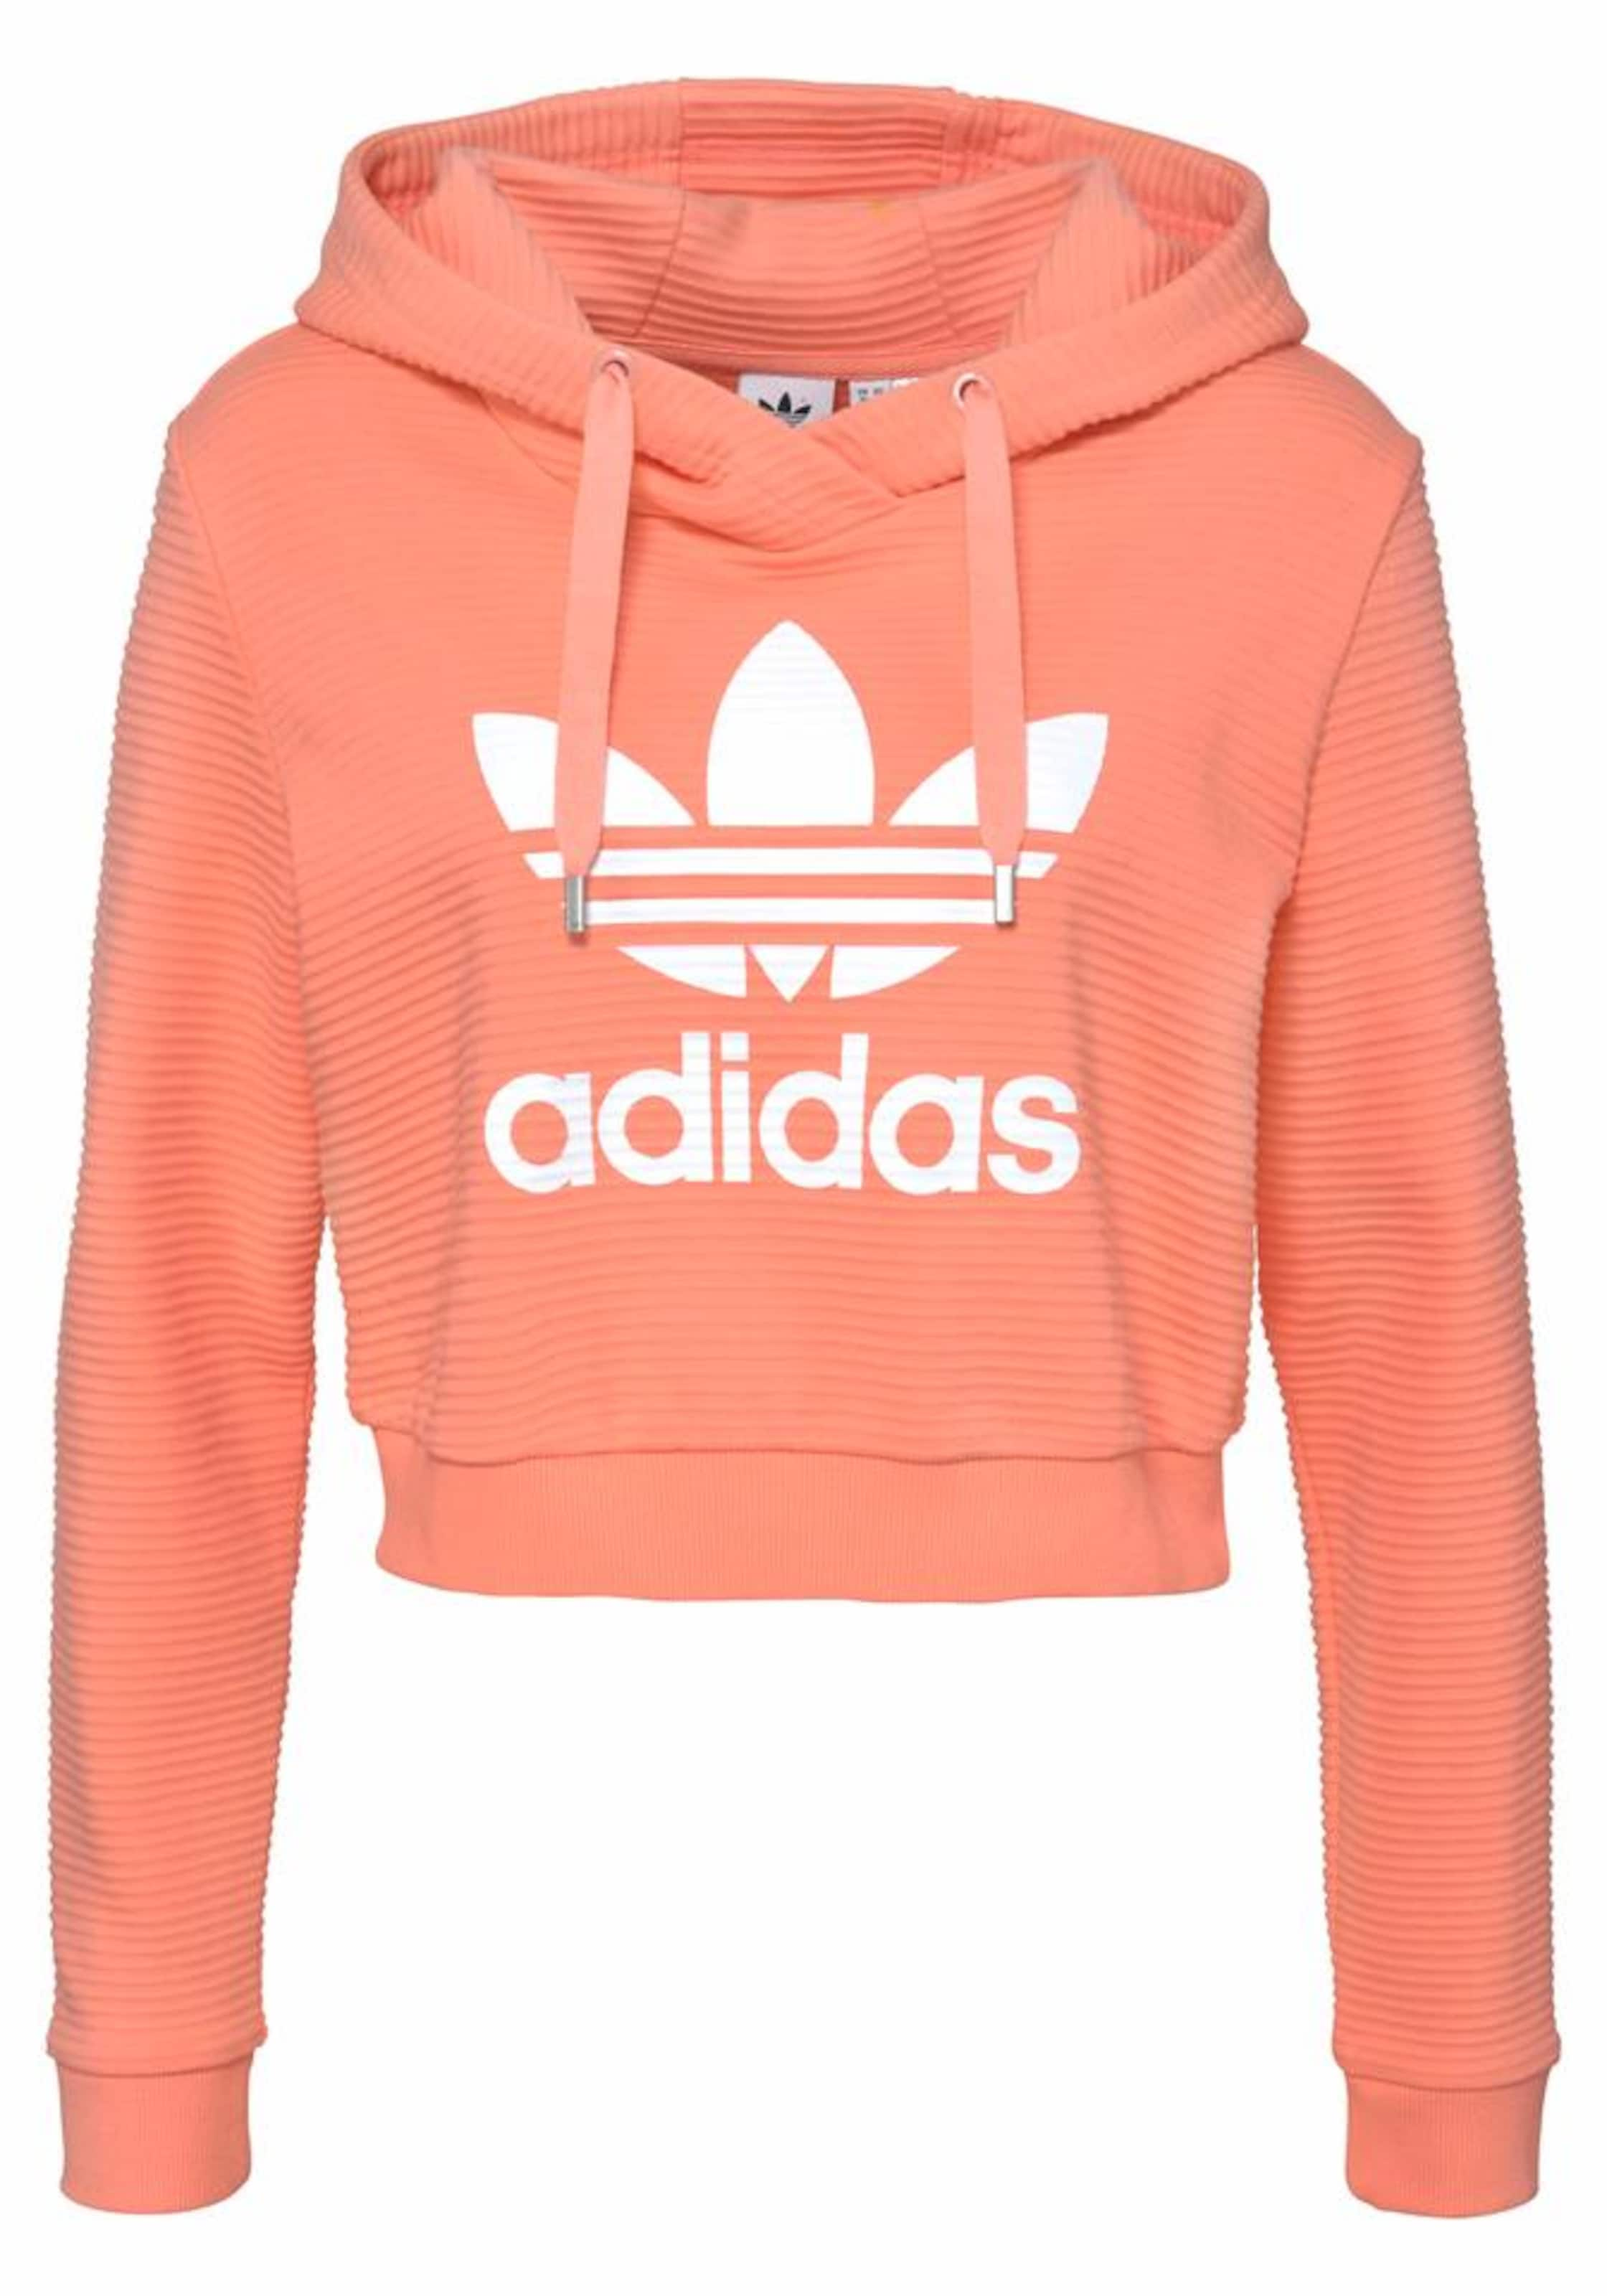 adidas femme vetements sweat